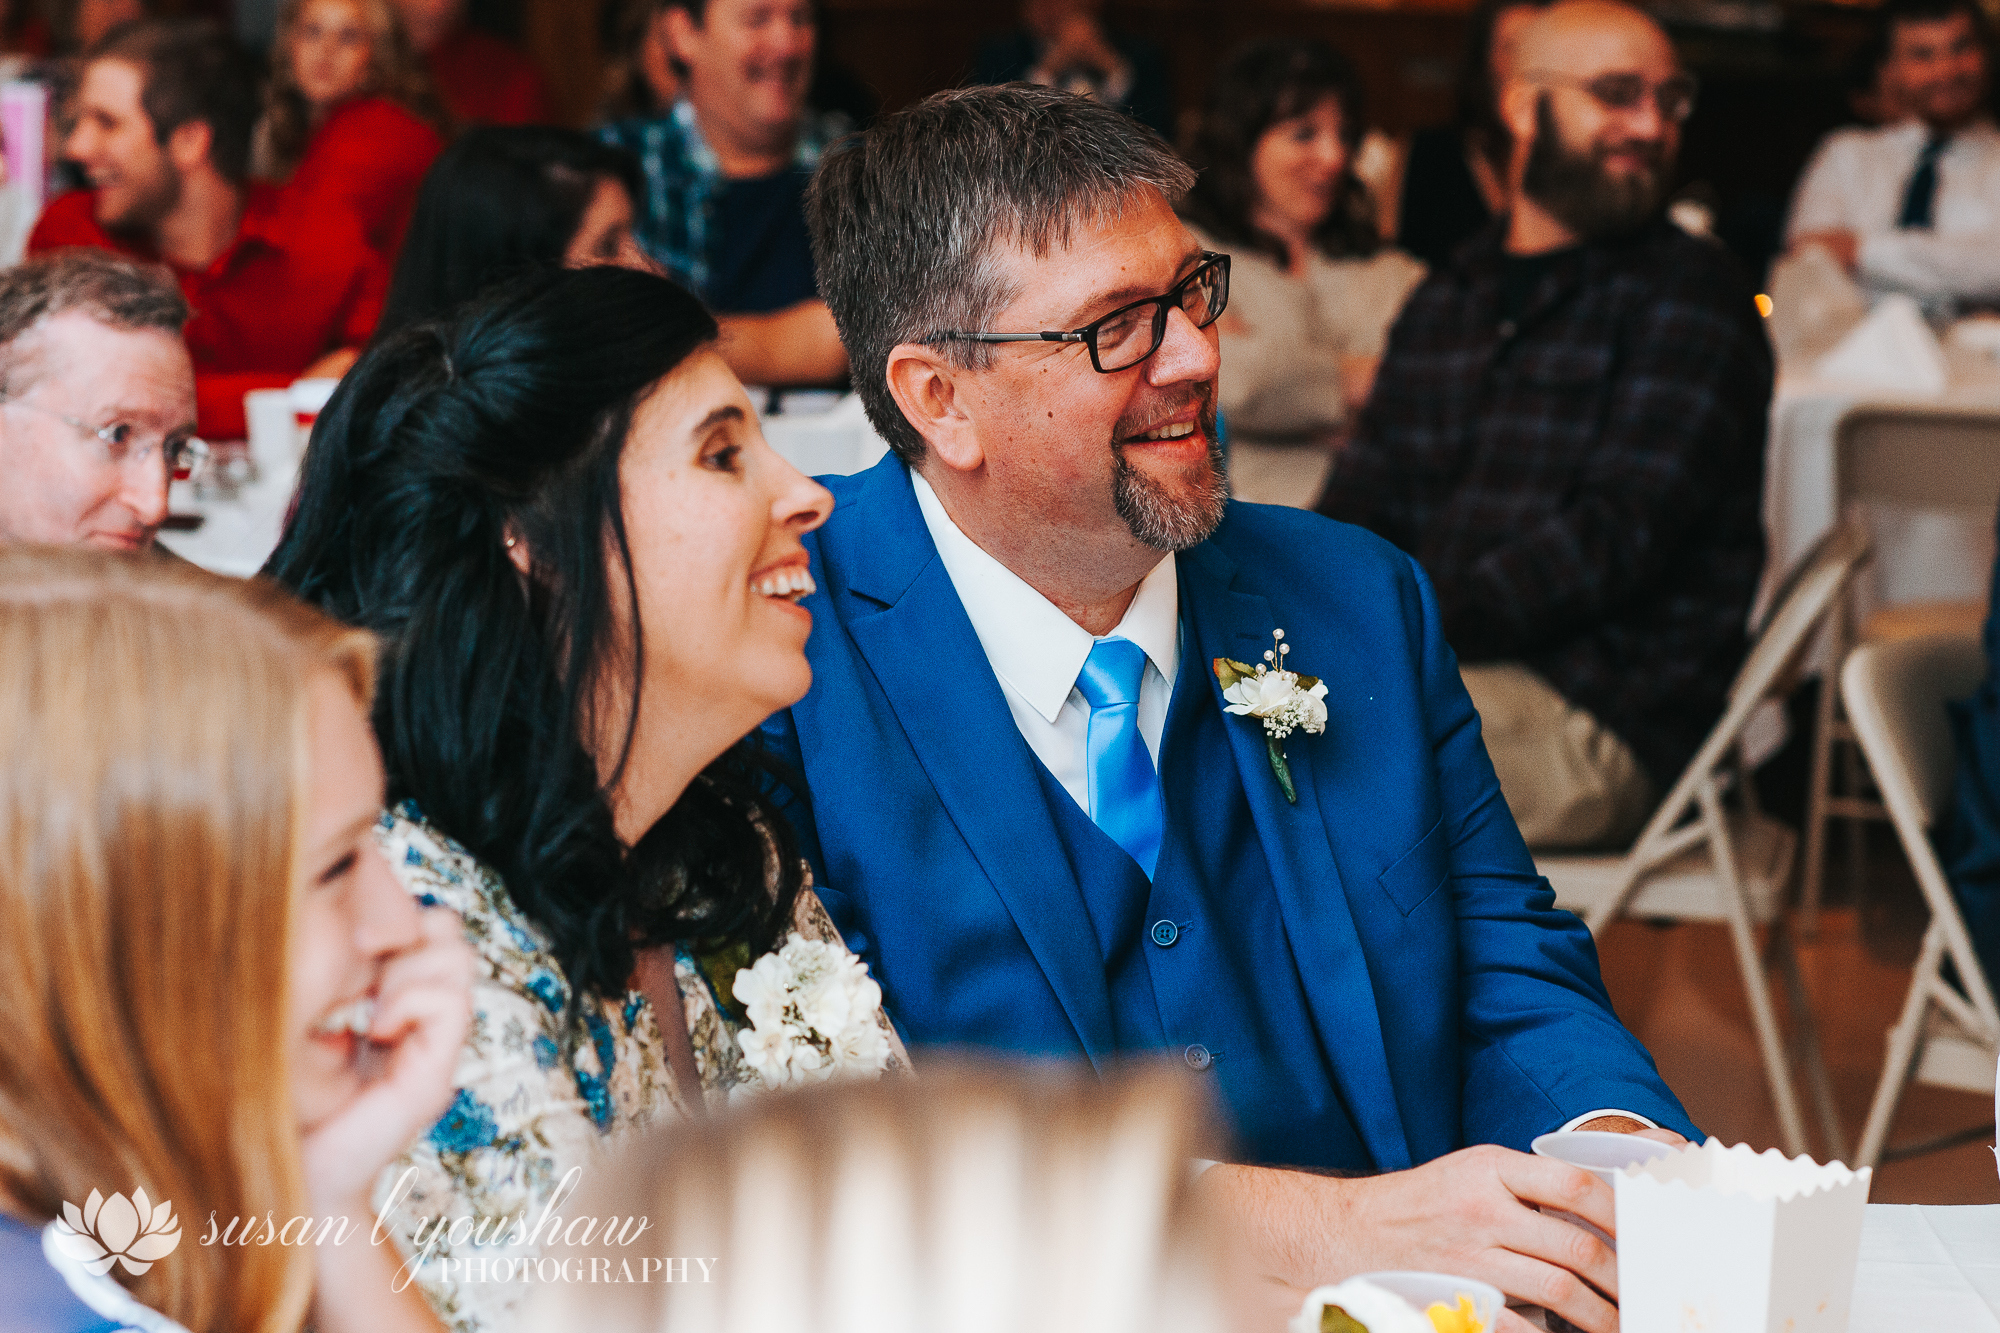 BLOG Kylie and corey Bennet 10-13-2018 SLY Photography LLC-146.jpg